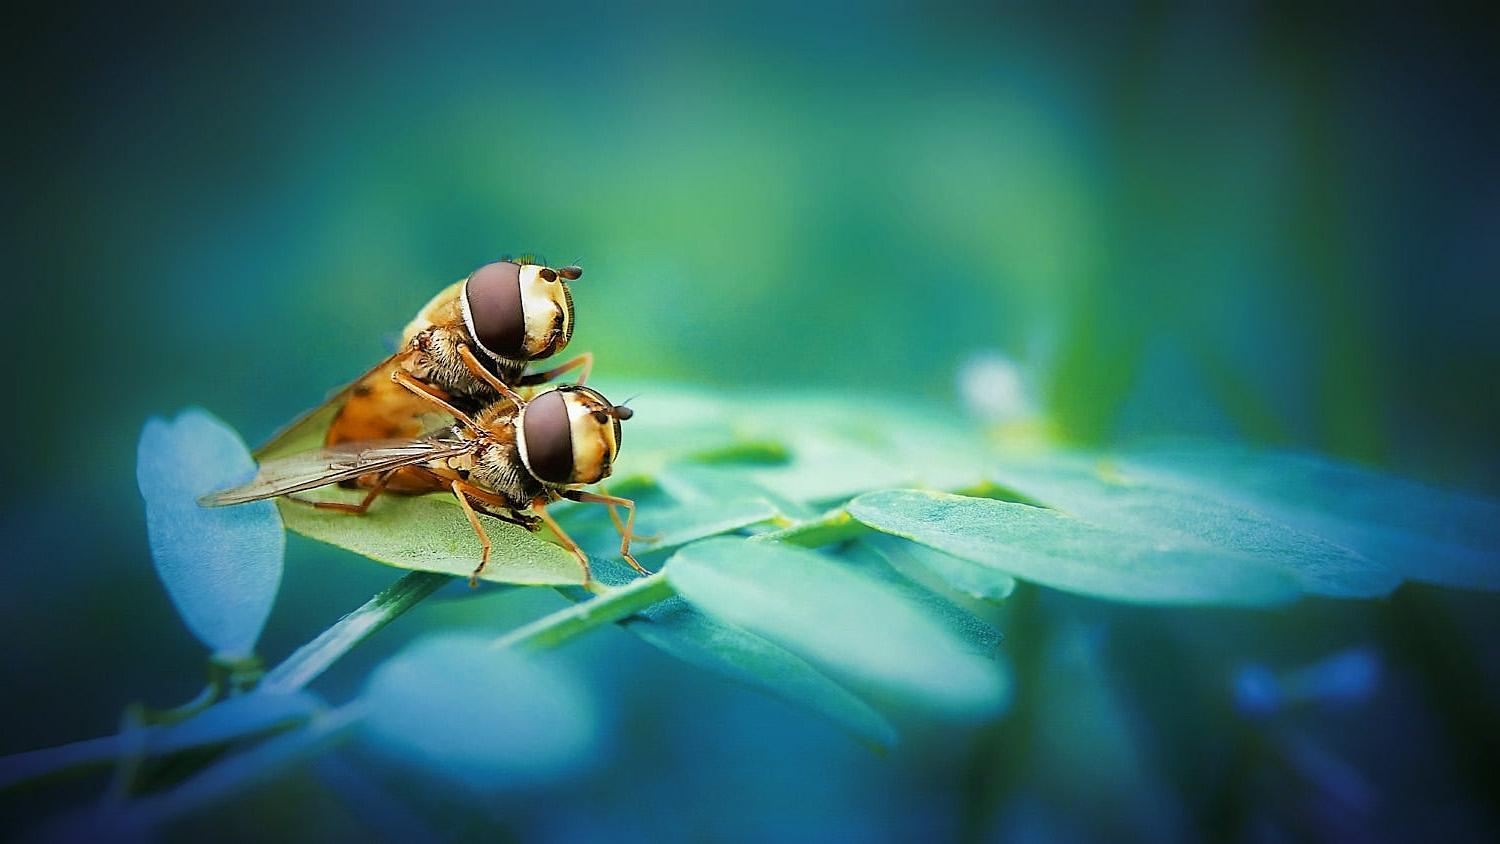 Macro/insect copulating